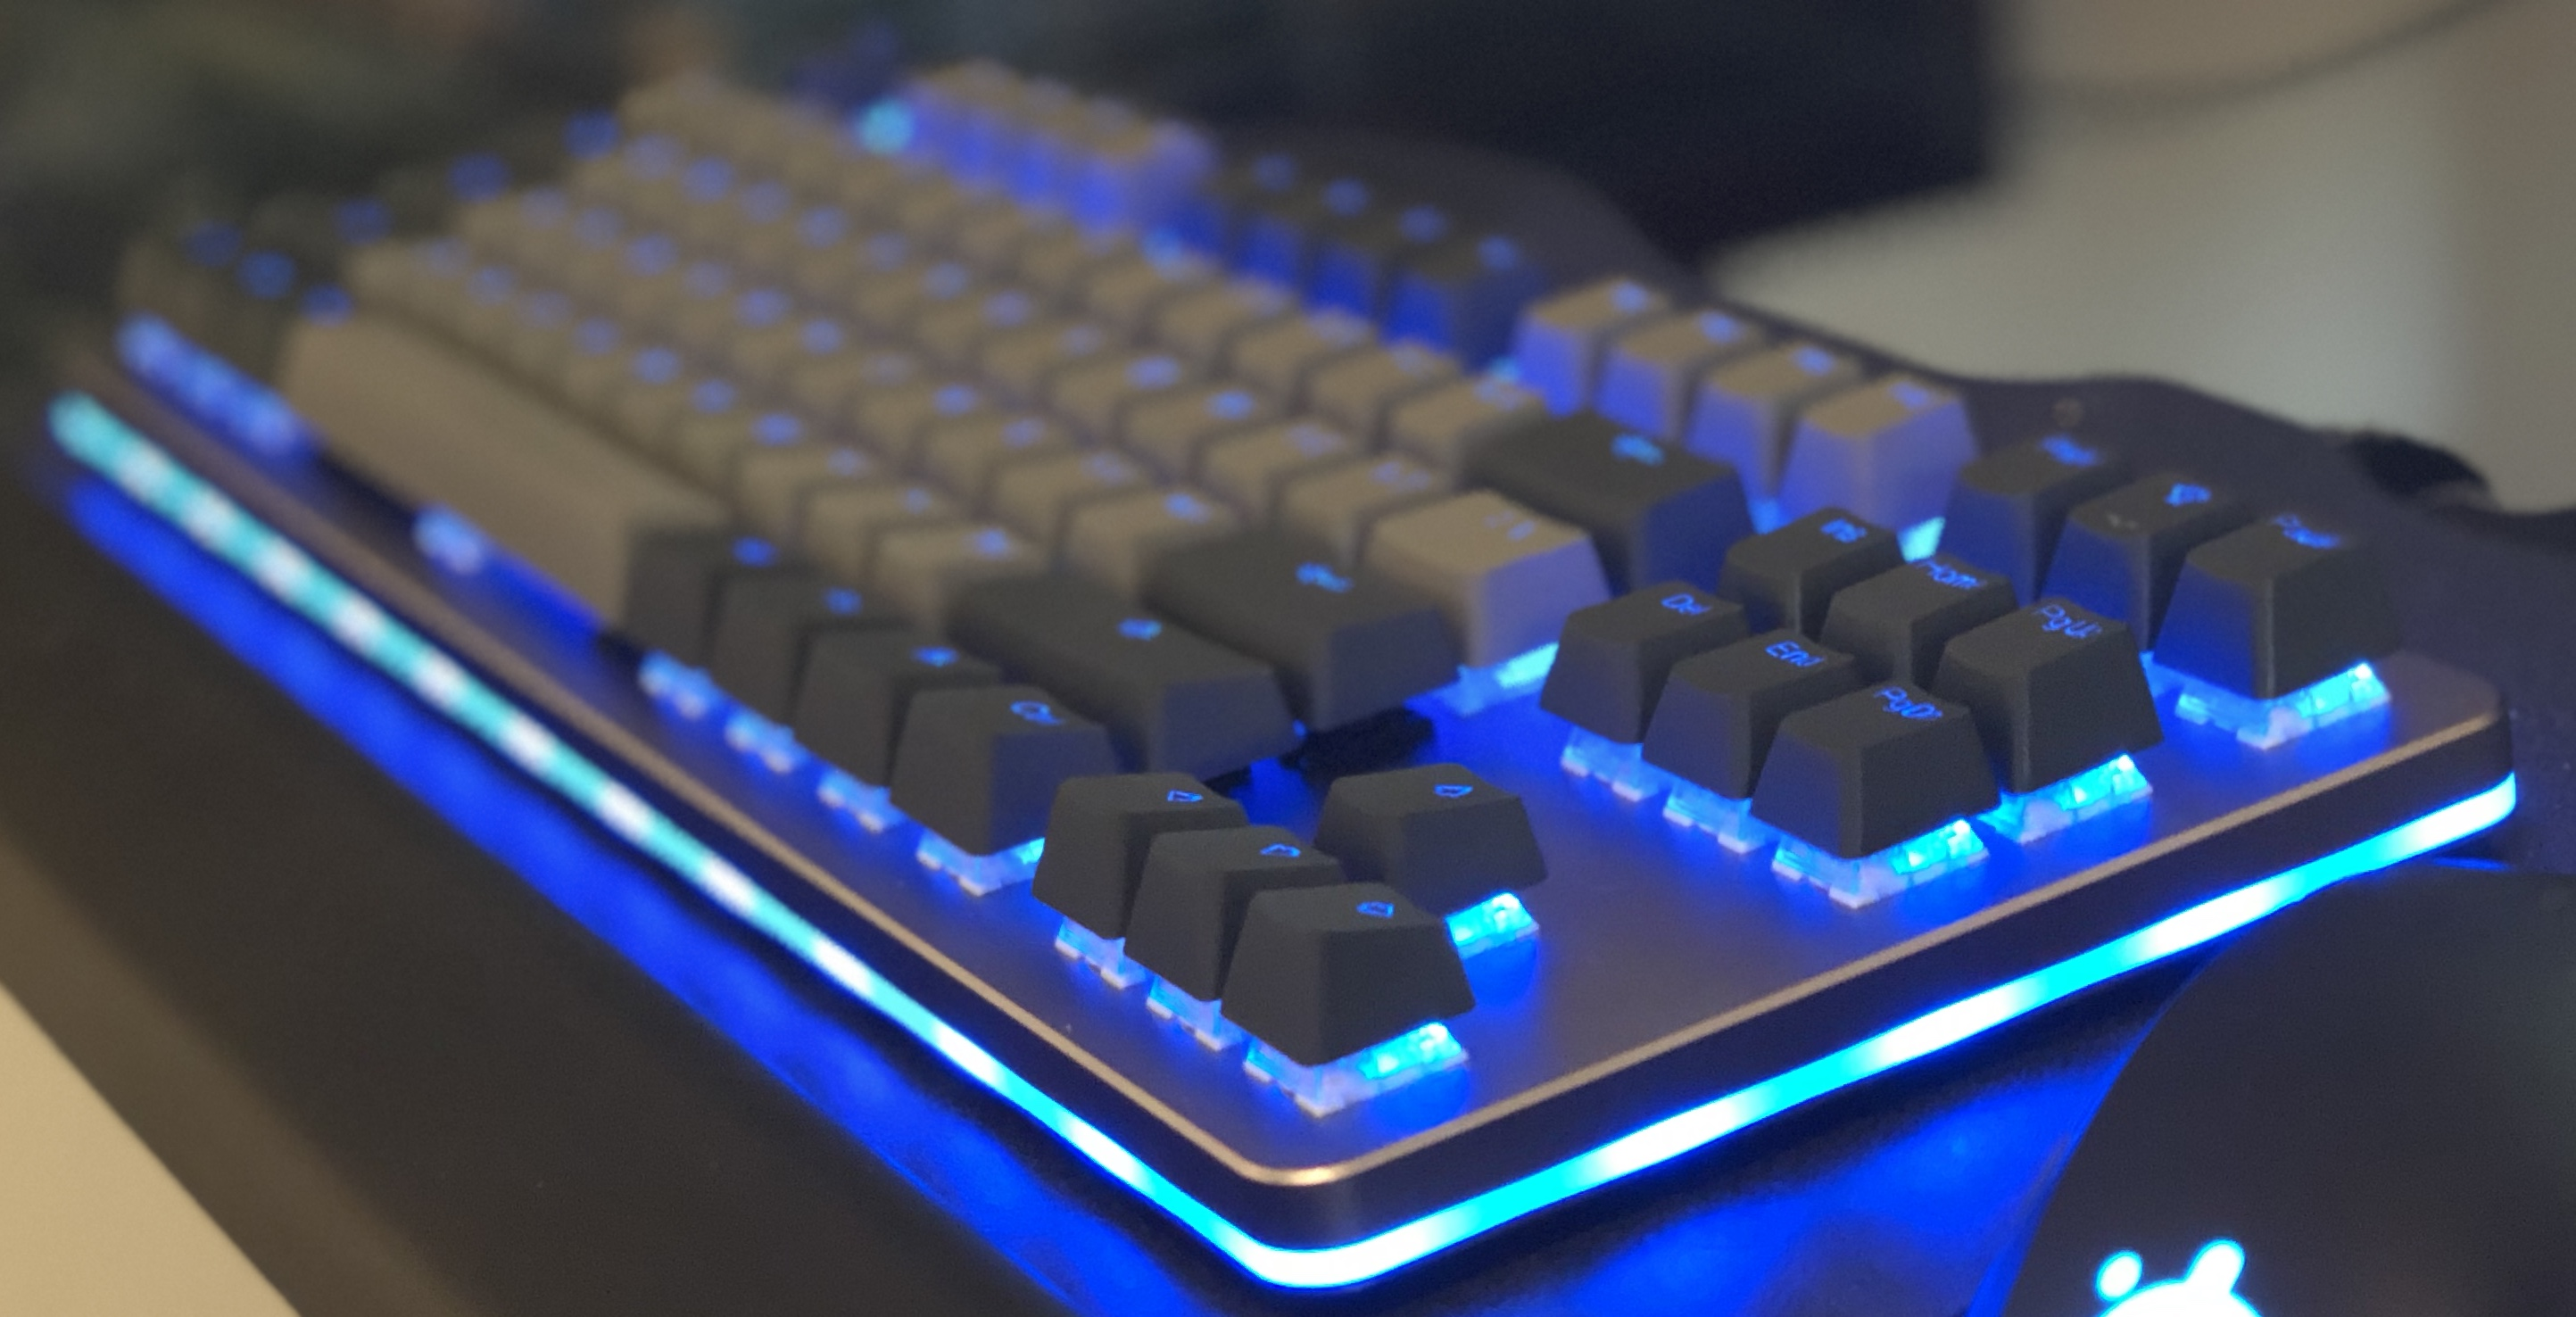 Massdrop's CTRL Mechanical Keyboard: my final review, including a